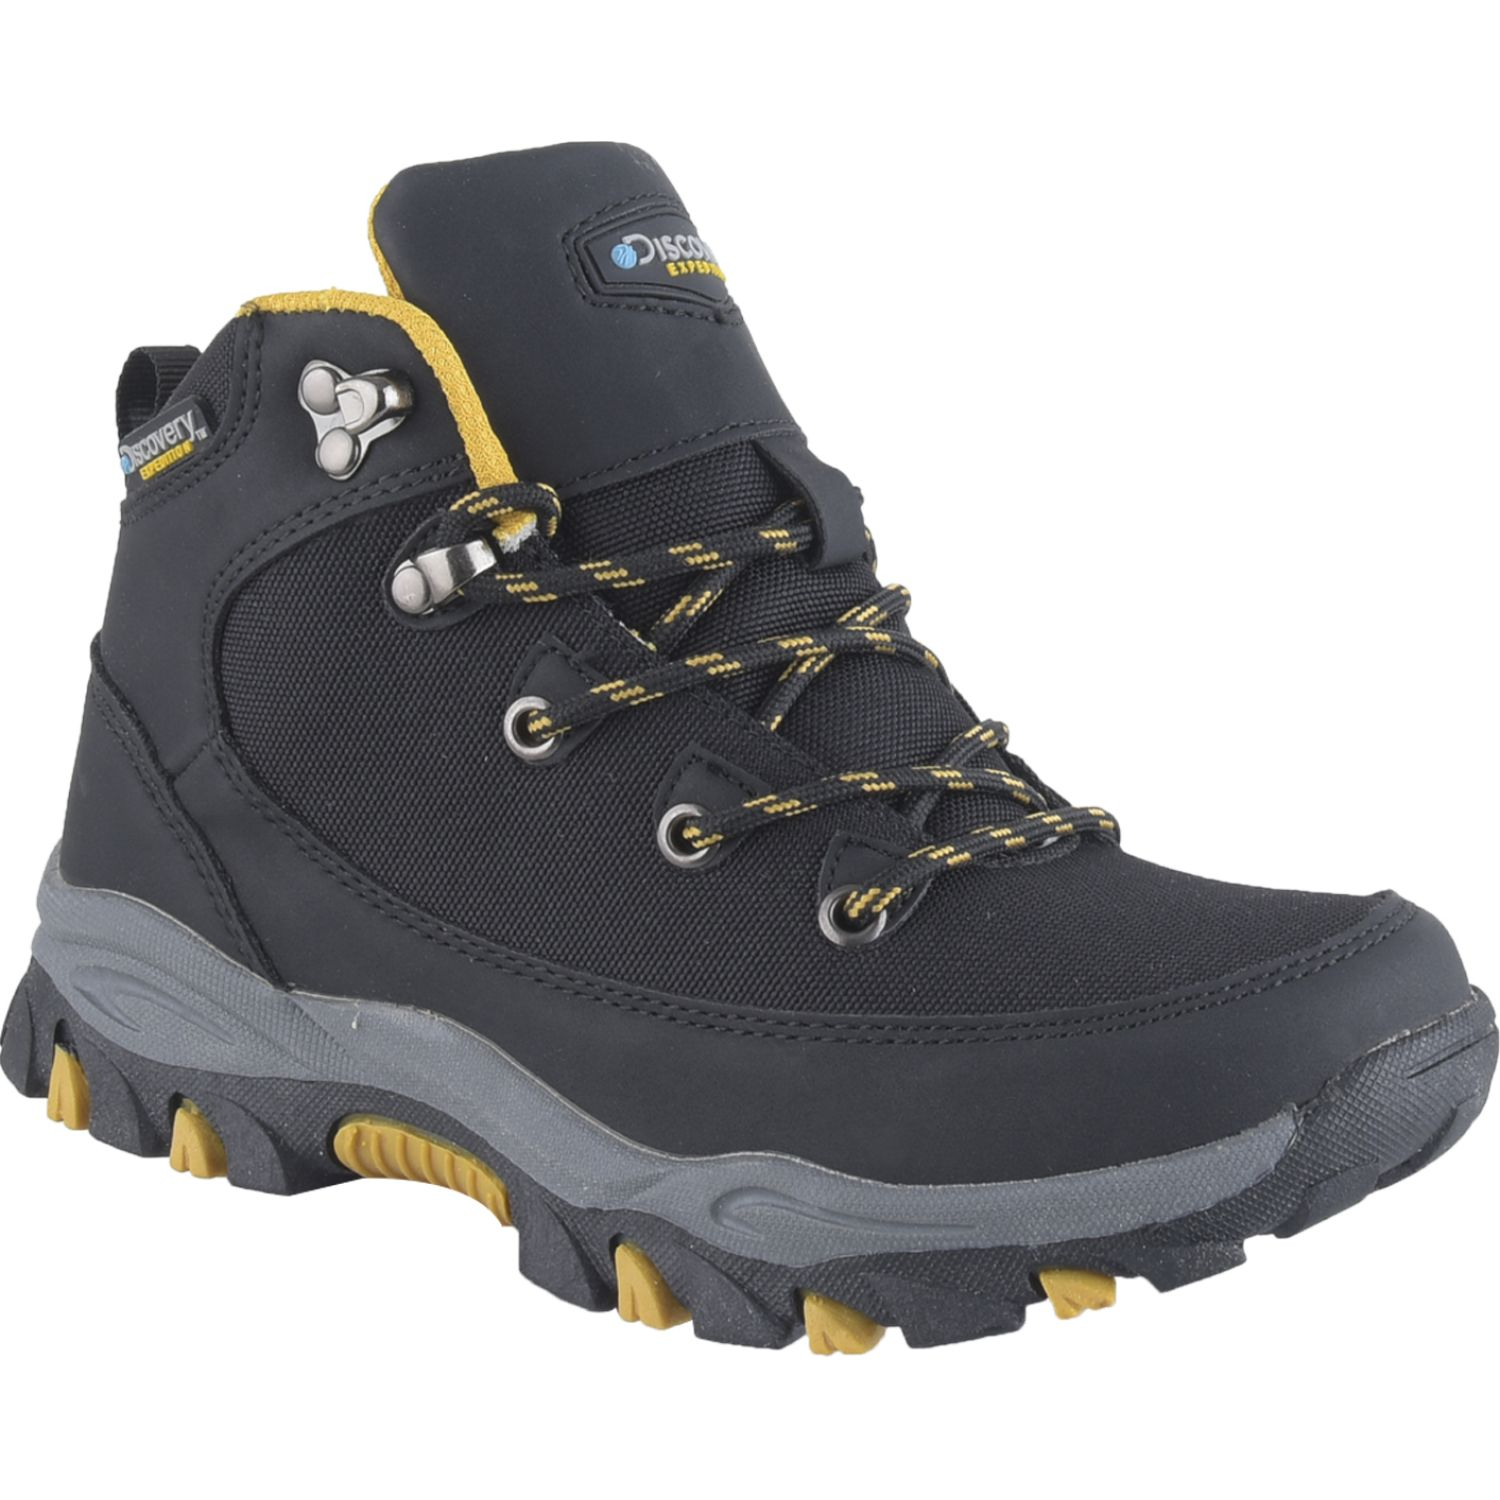 DISCOVERY EXPEDITION BYRON238 Negro Calzado hiking